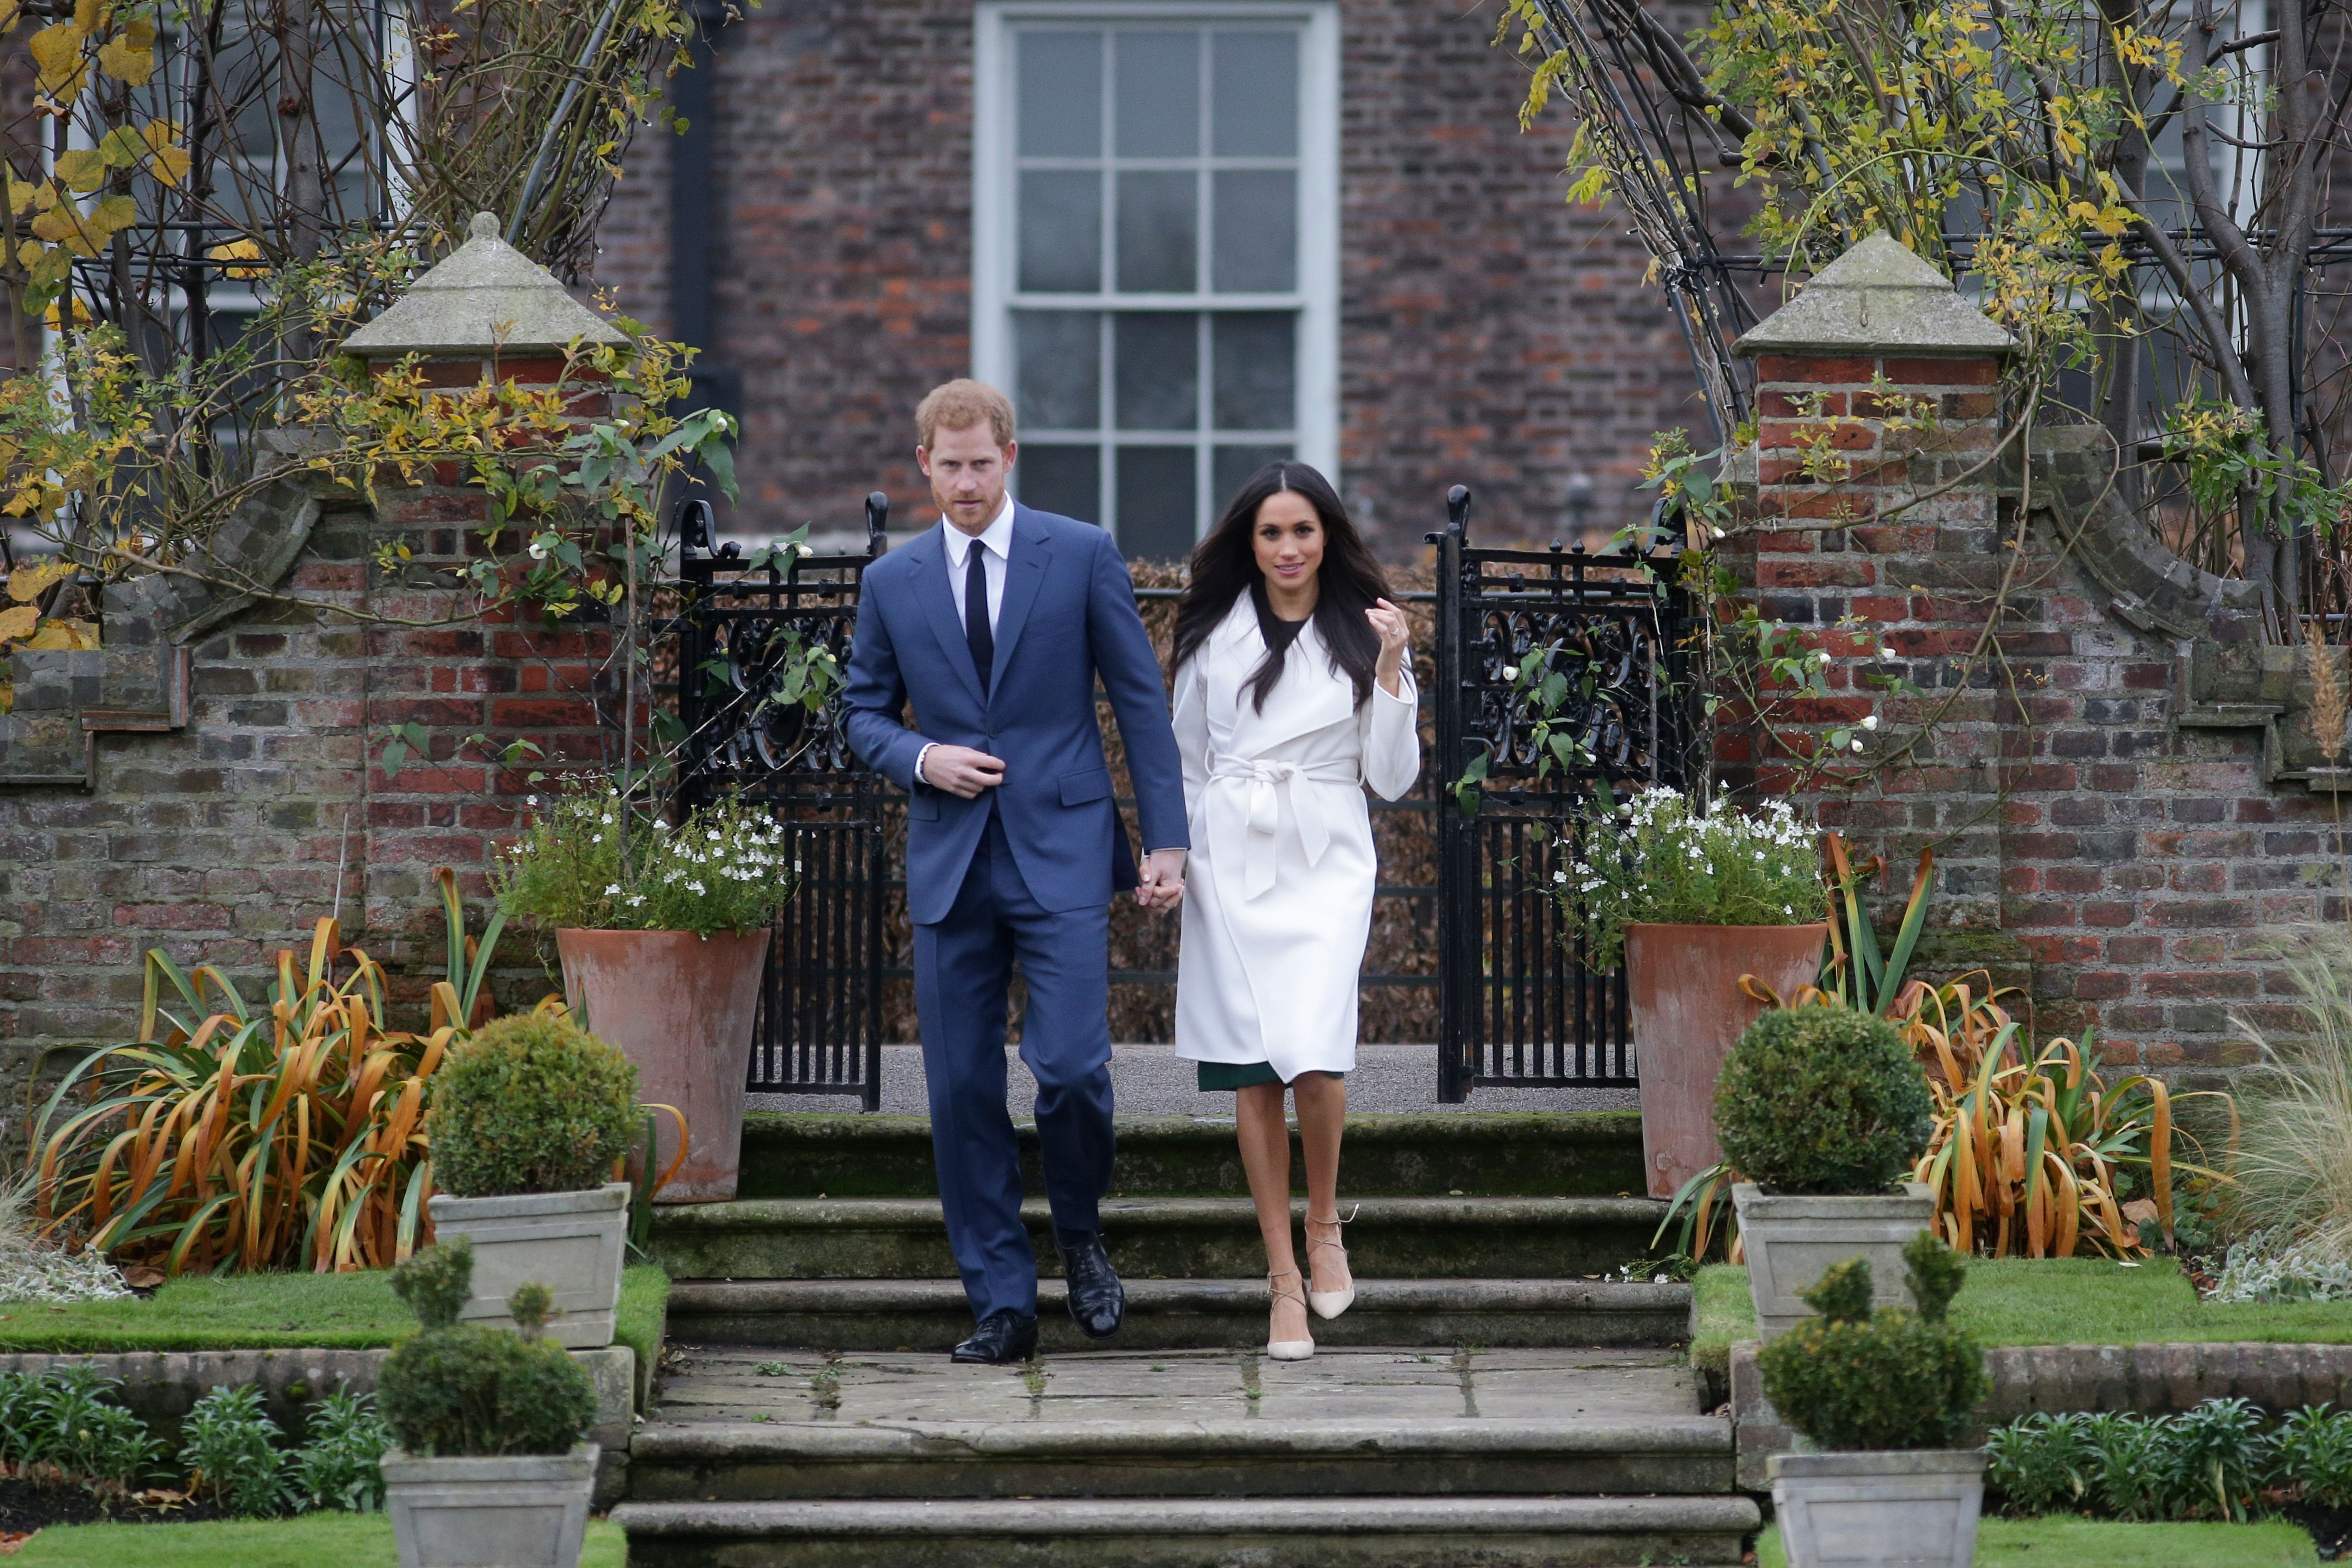 Prince Harry and his fiancée Meghan Markle pose for a photograph in the Sunken Garden at Kensington Palace in west London on November 27, 2017